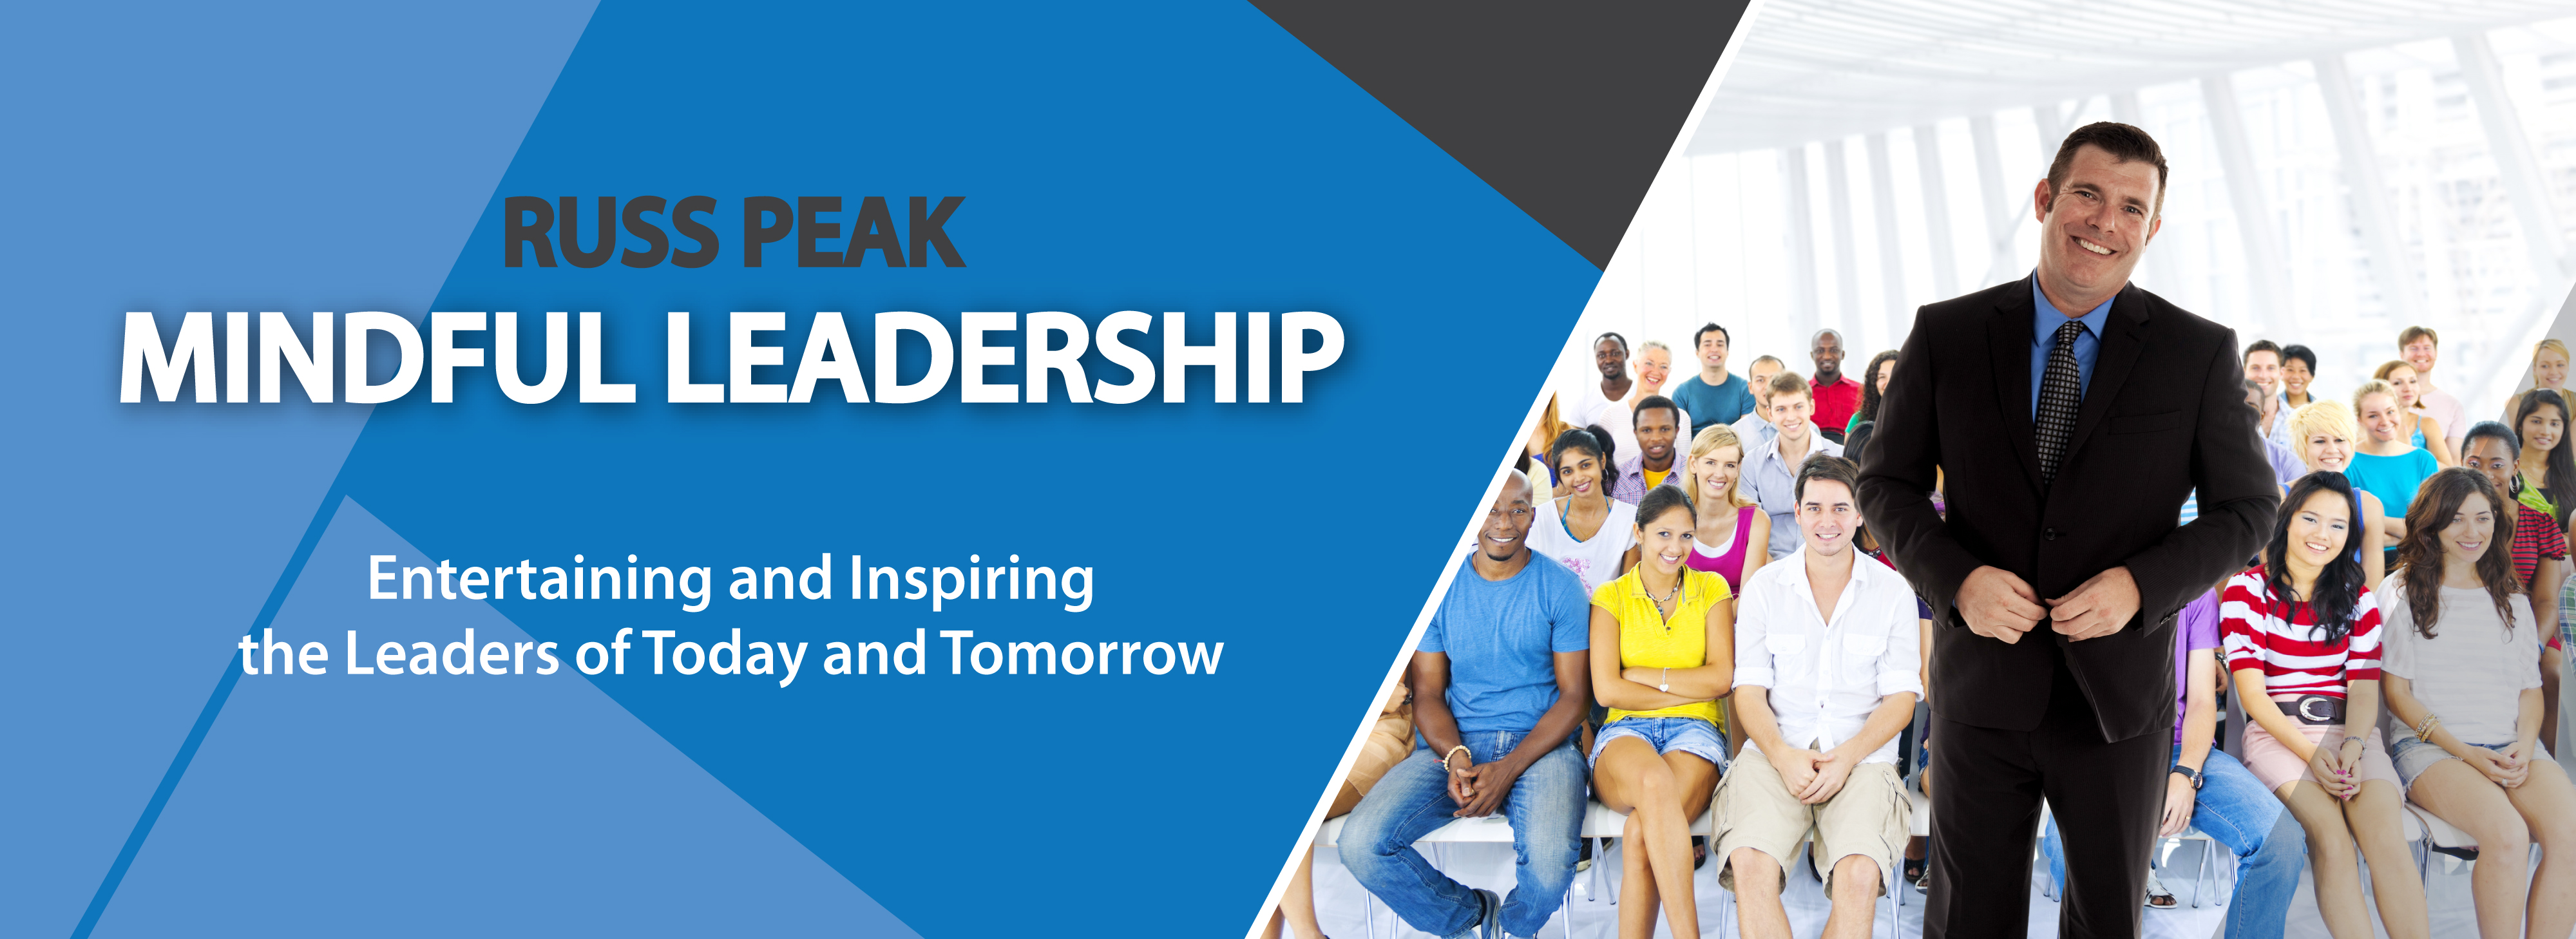 leadership keynote speaker banner 1